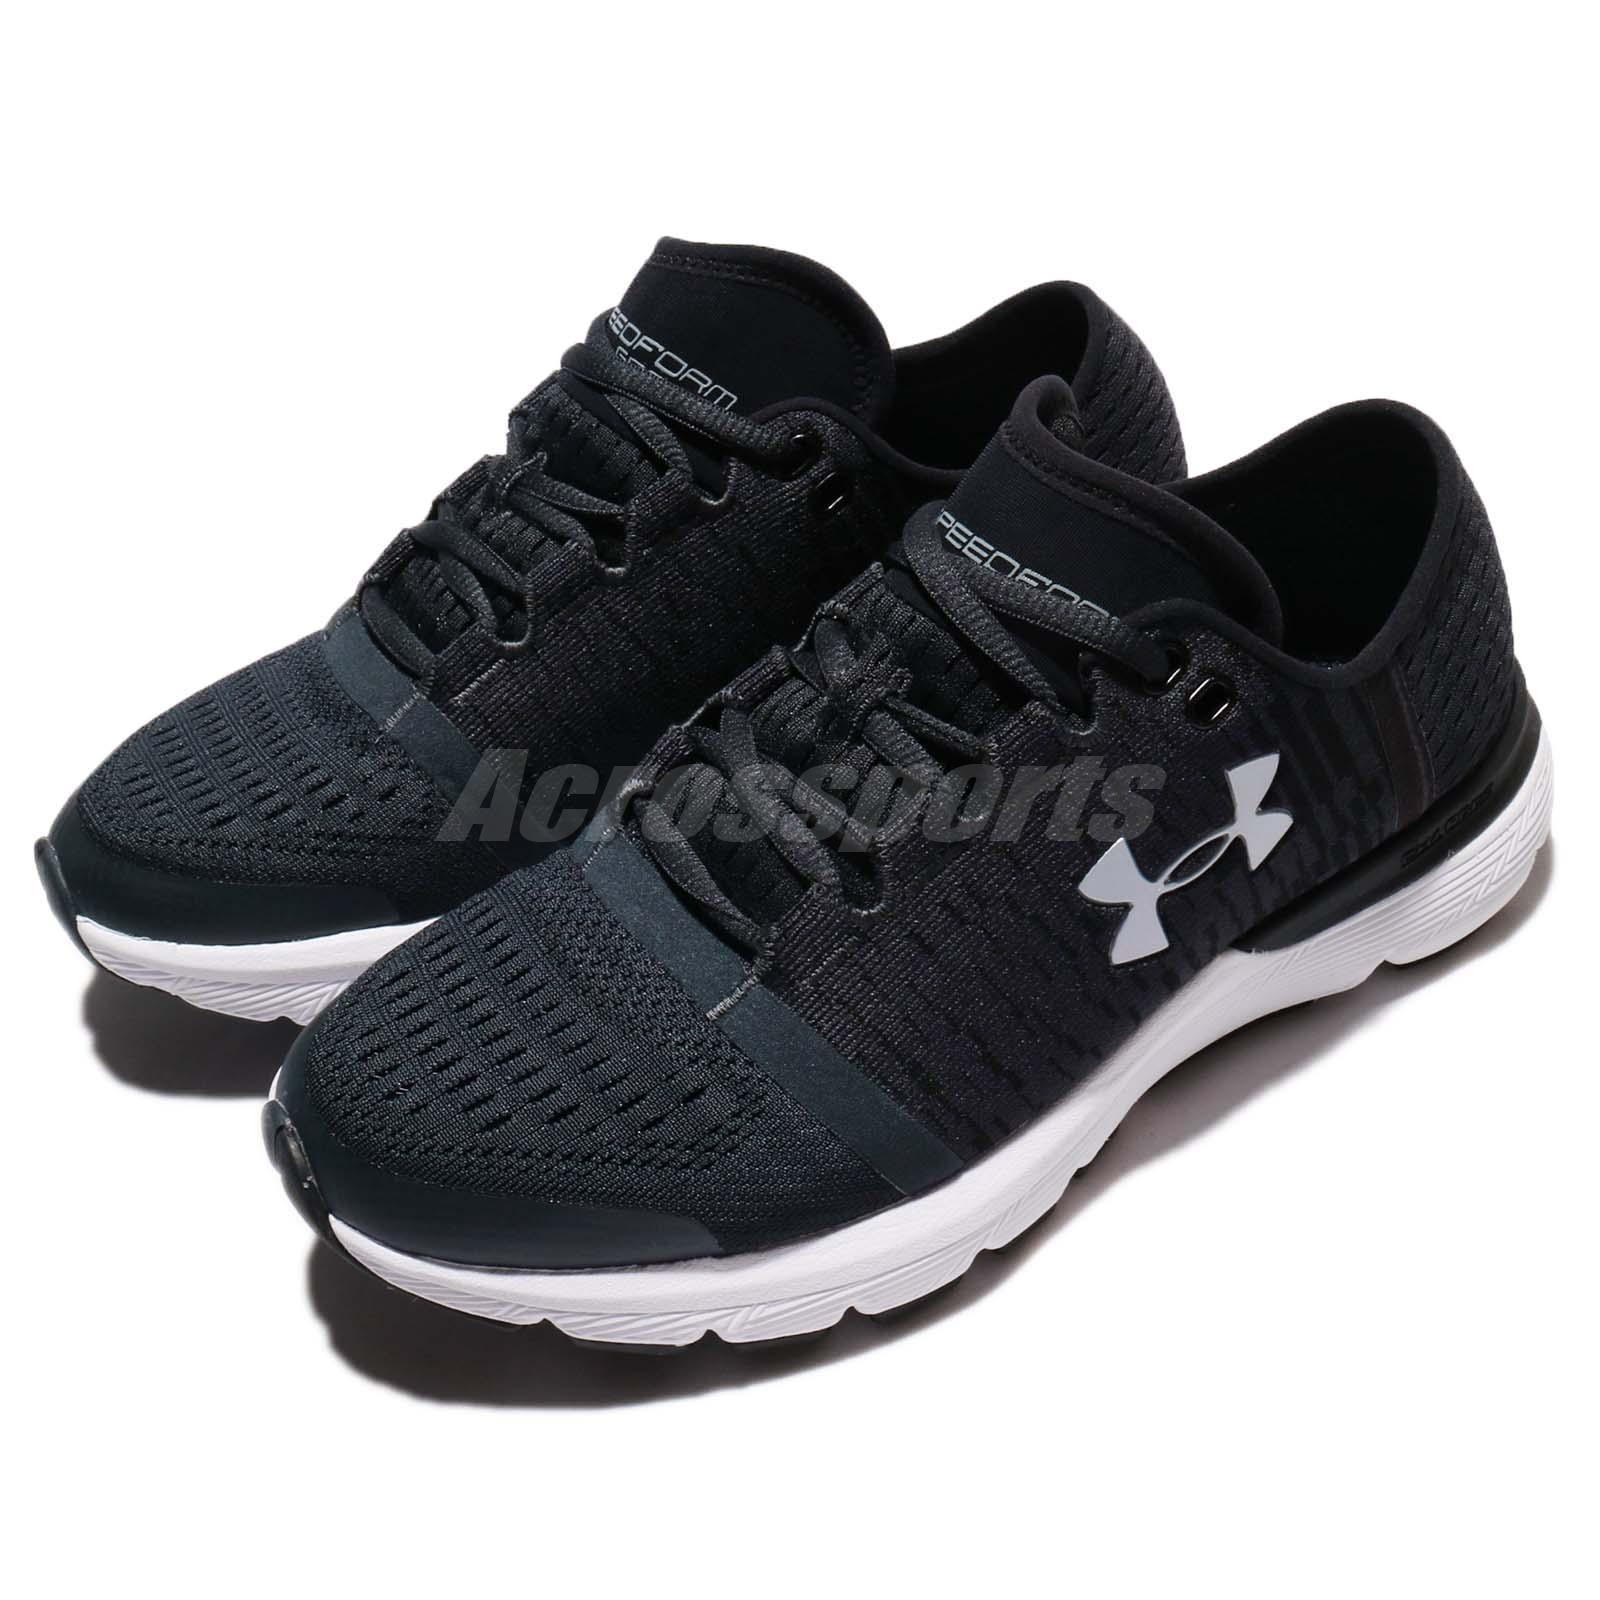 reputable site 347a8 18345 Details about Under Armour Speedform Gemini 3 GR Black White Women Running  Shoes 1298662-100